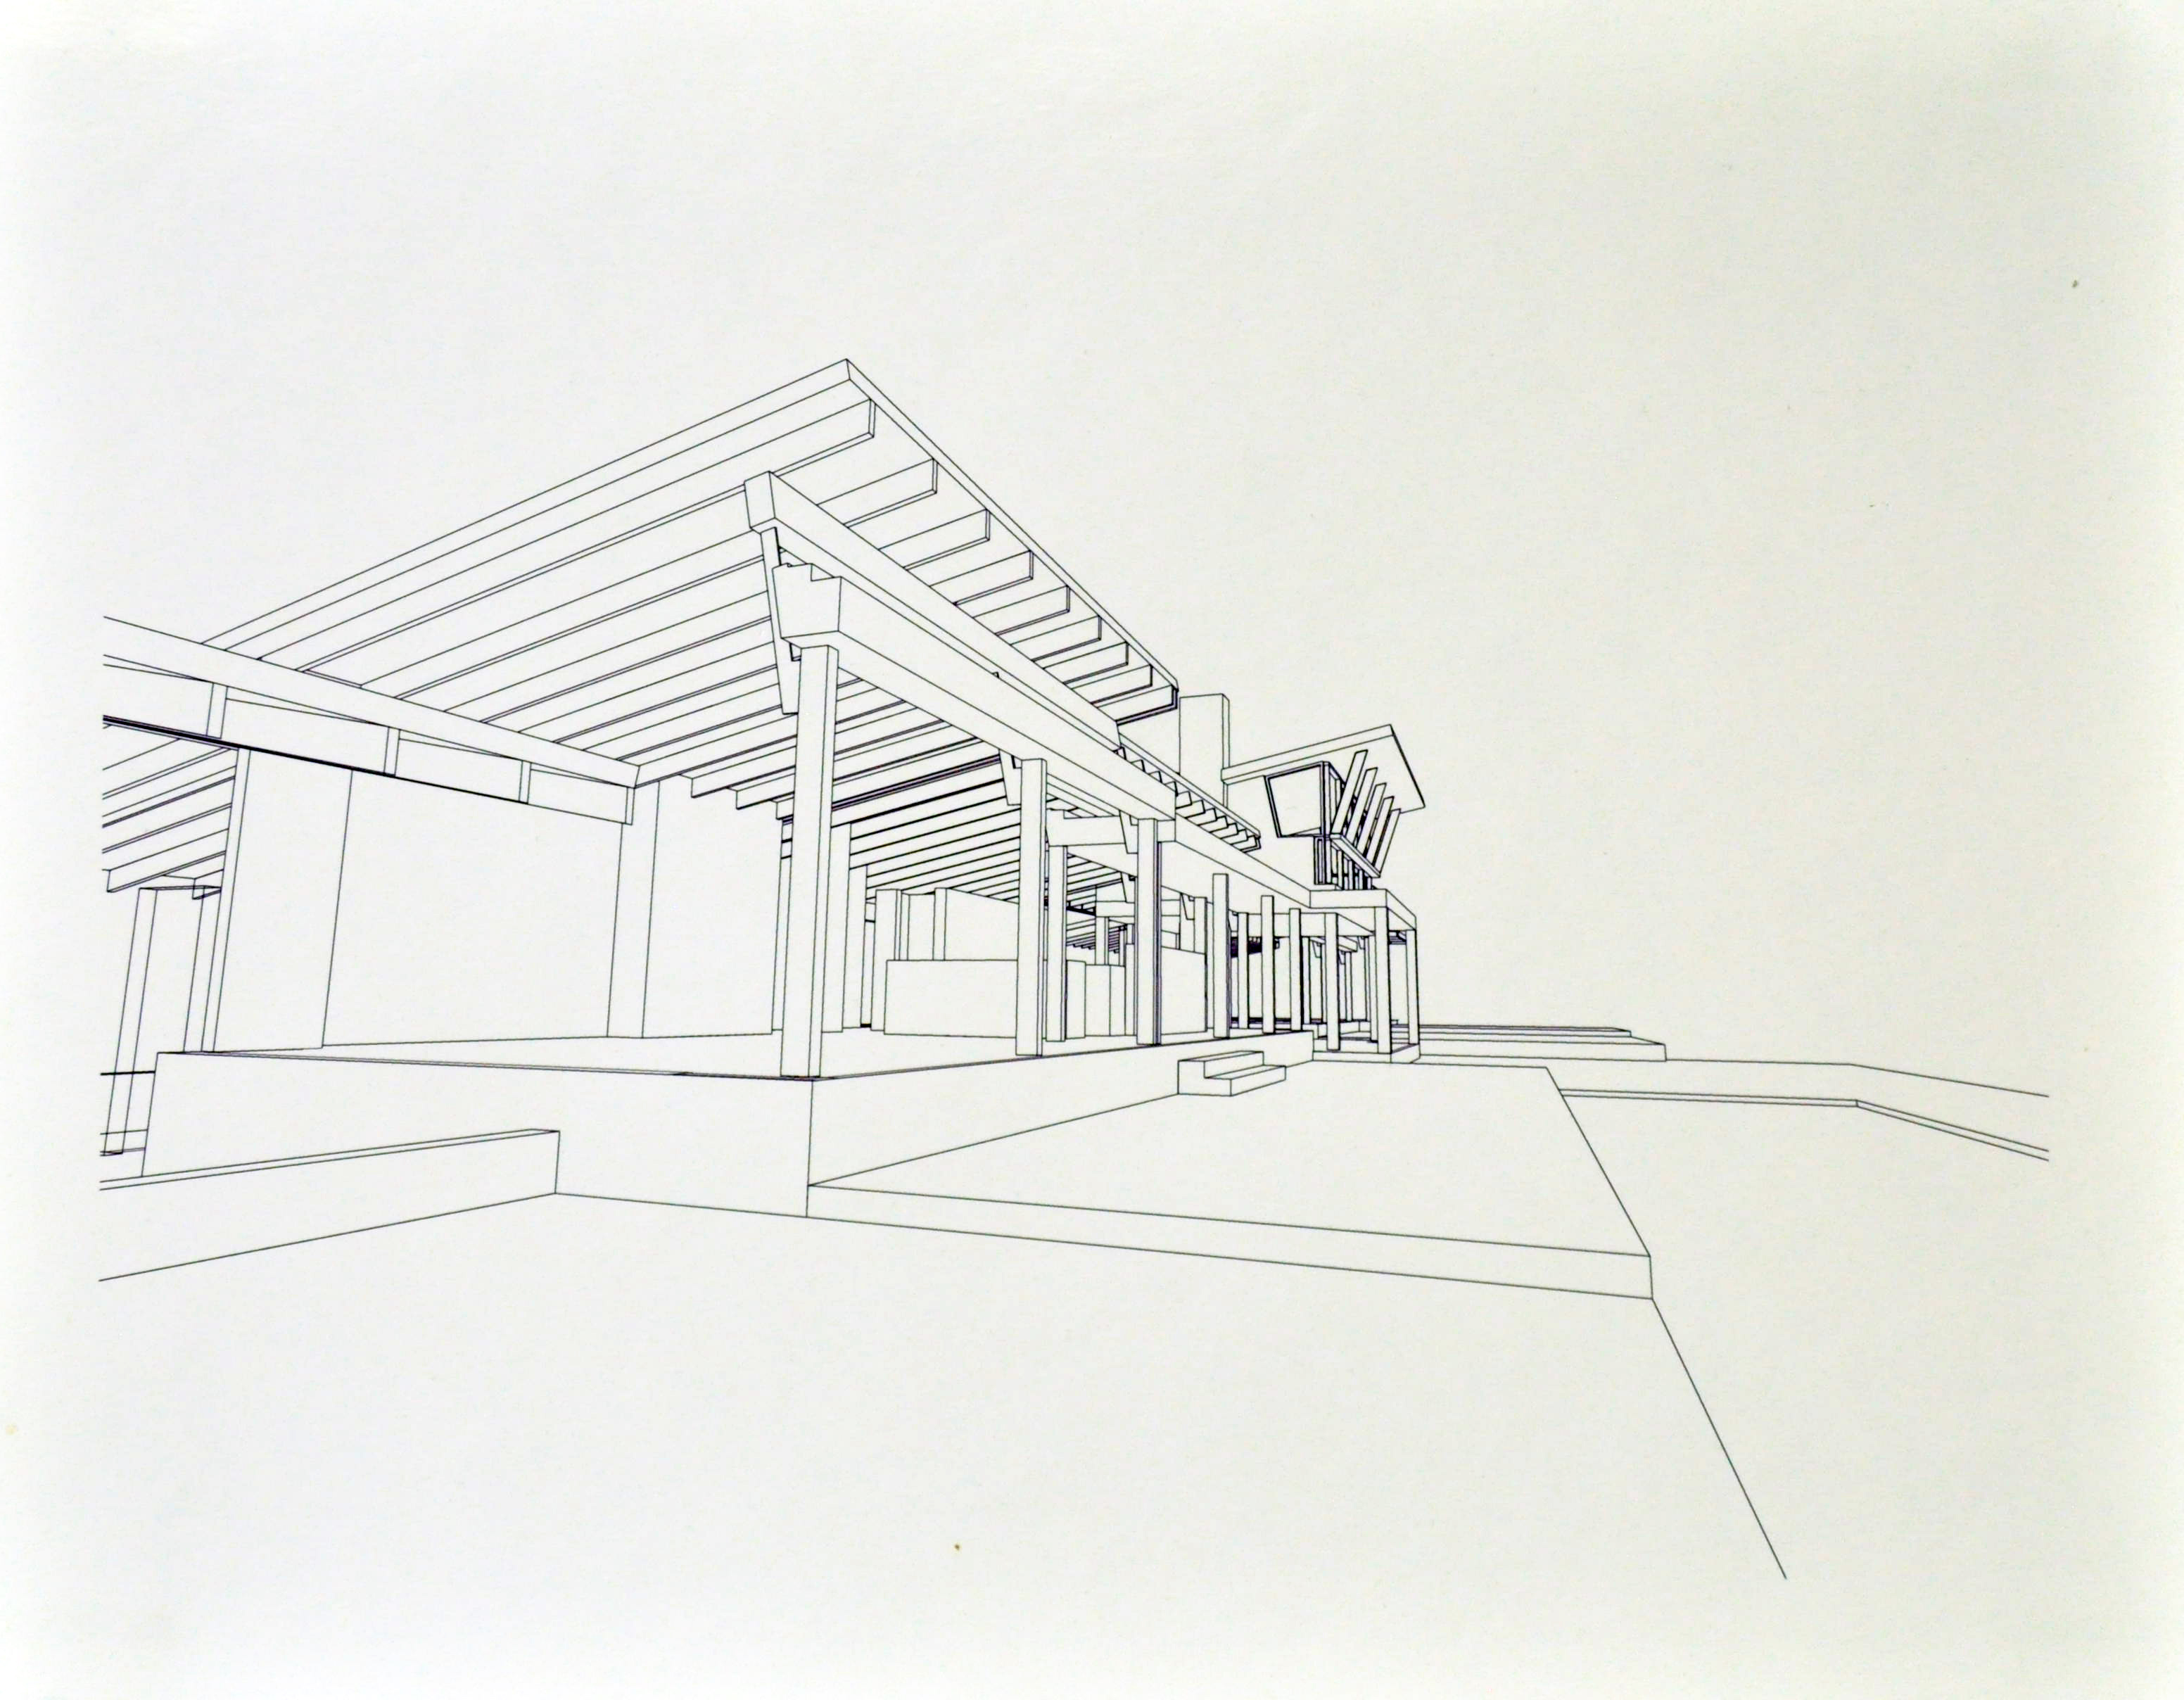 Concepts Passive Solar Cabin And House For 2 Architects Lowell Lo Design Inc Architect